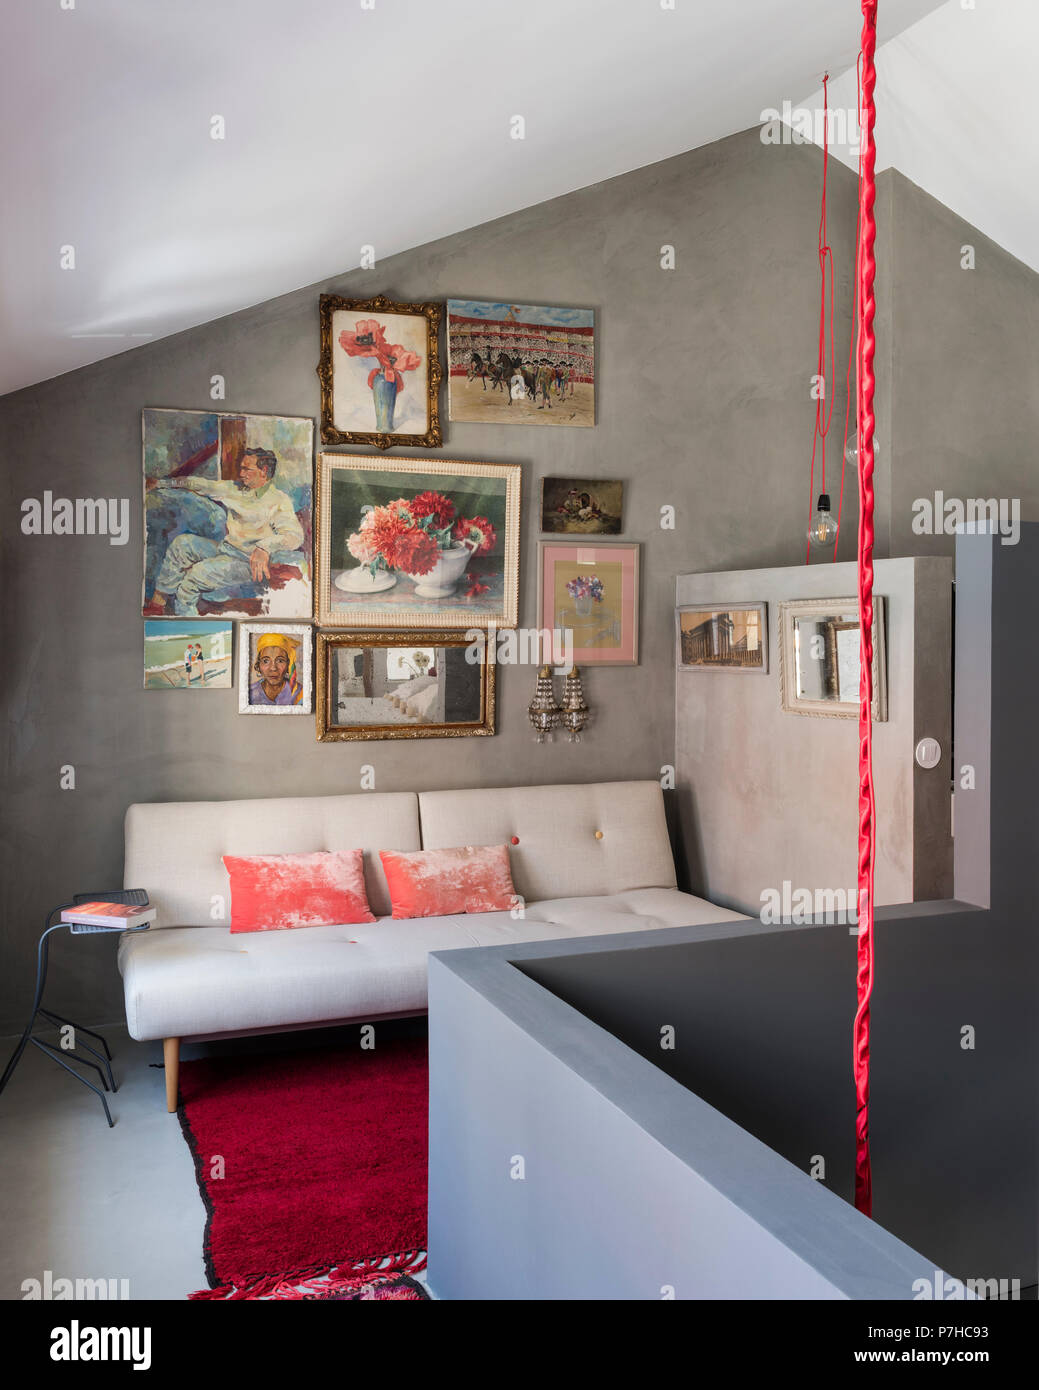 Colourful mix of still lifes and portraits on wall of seating area in modern loft style apartment - Stock Image